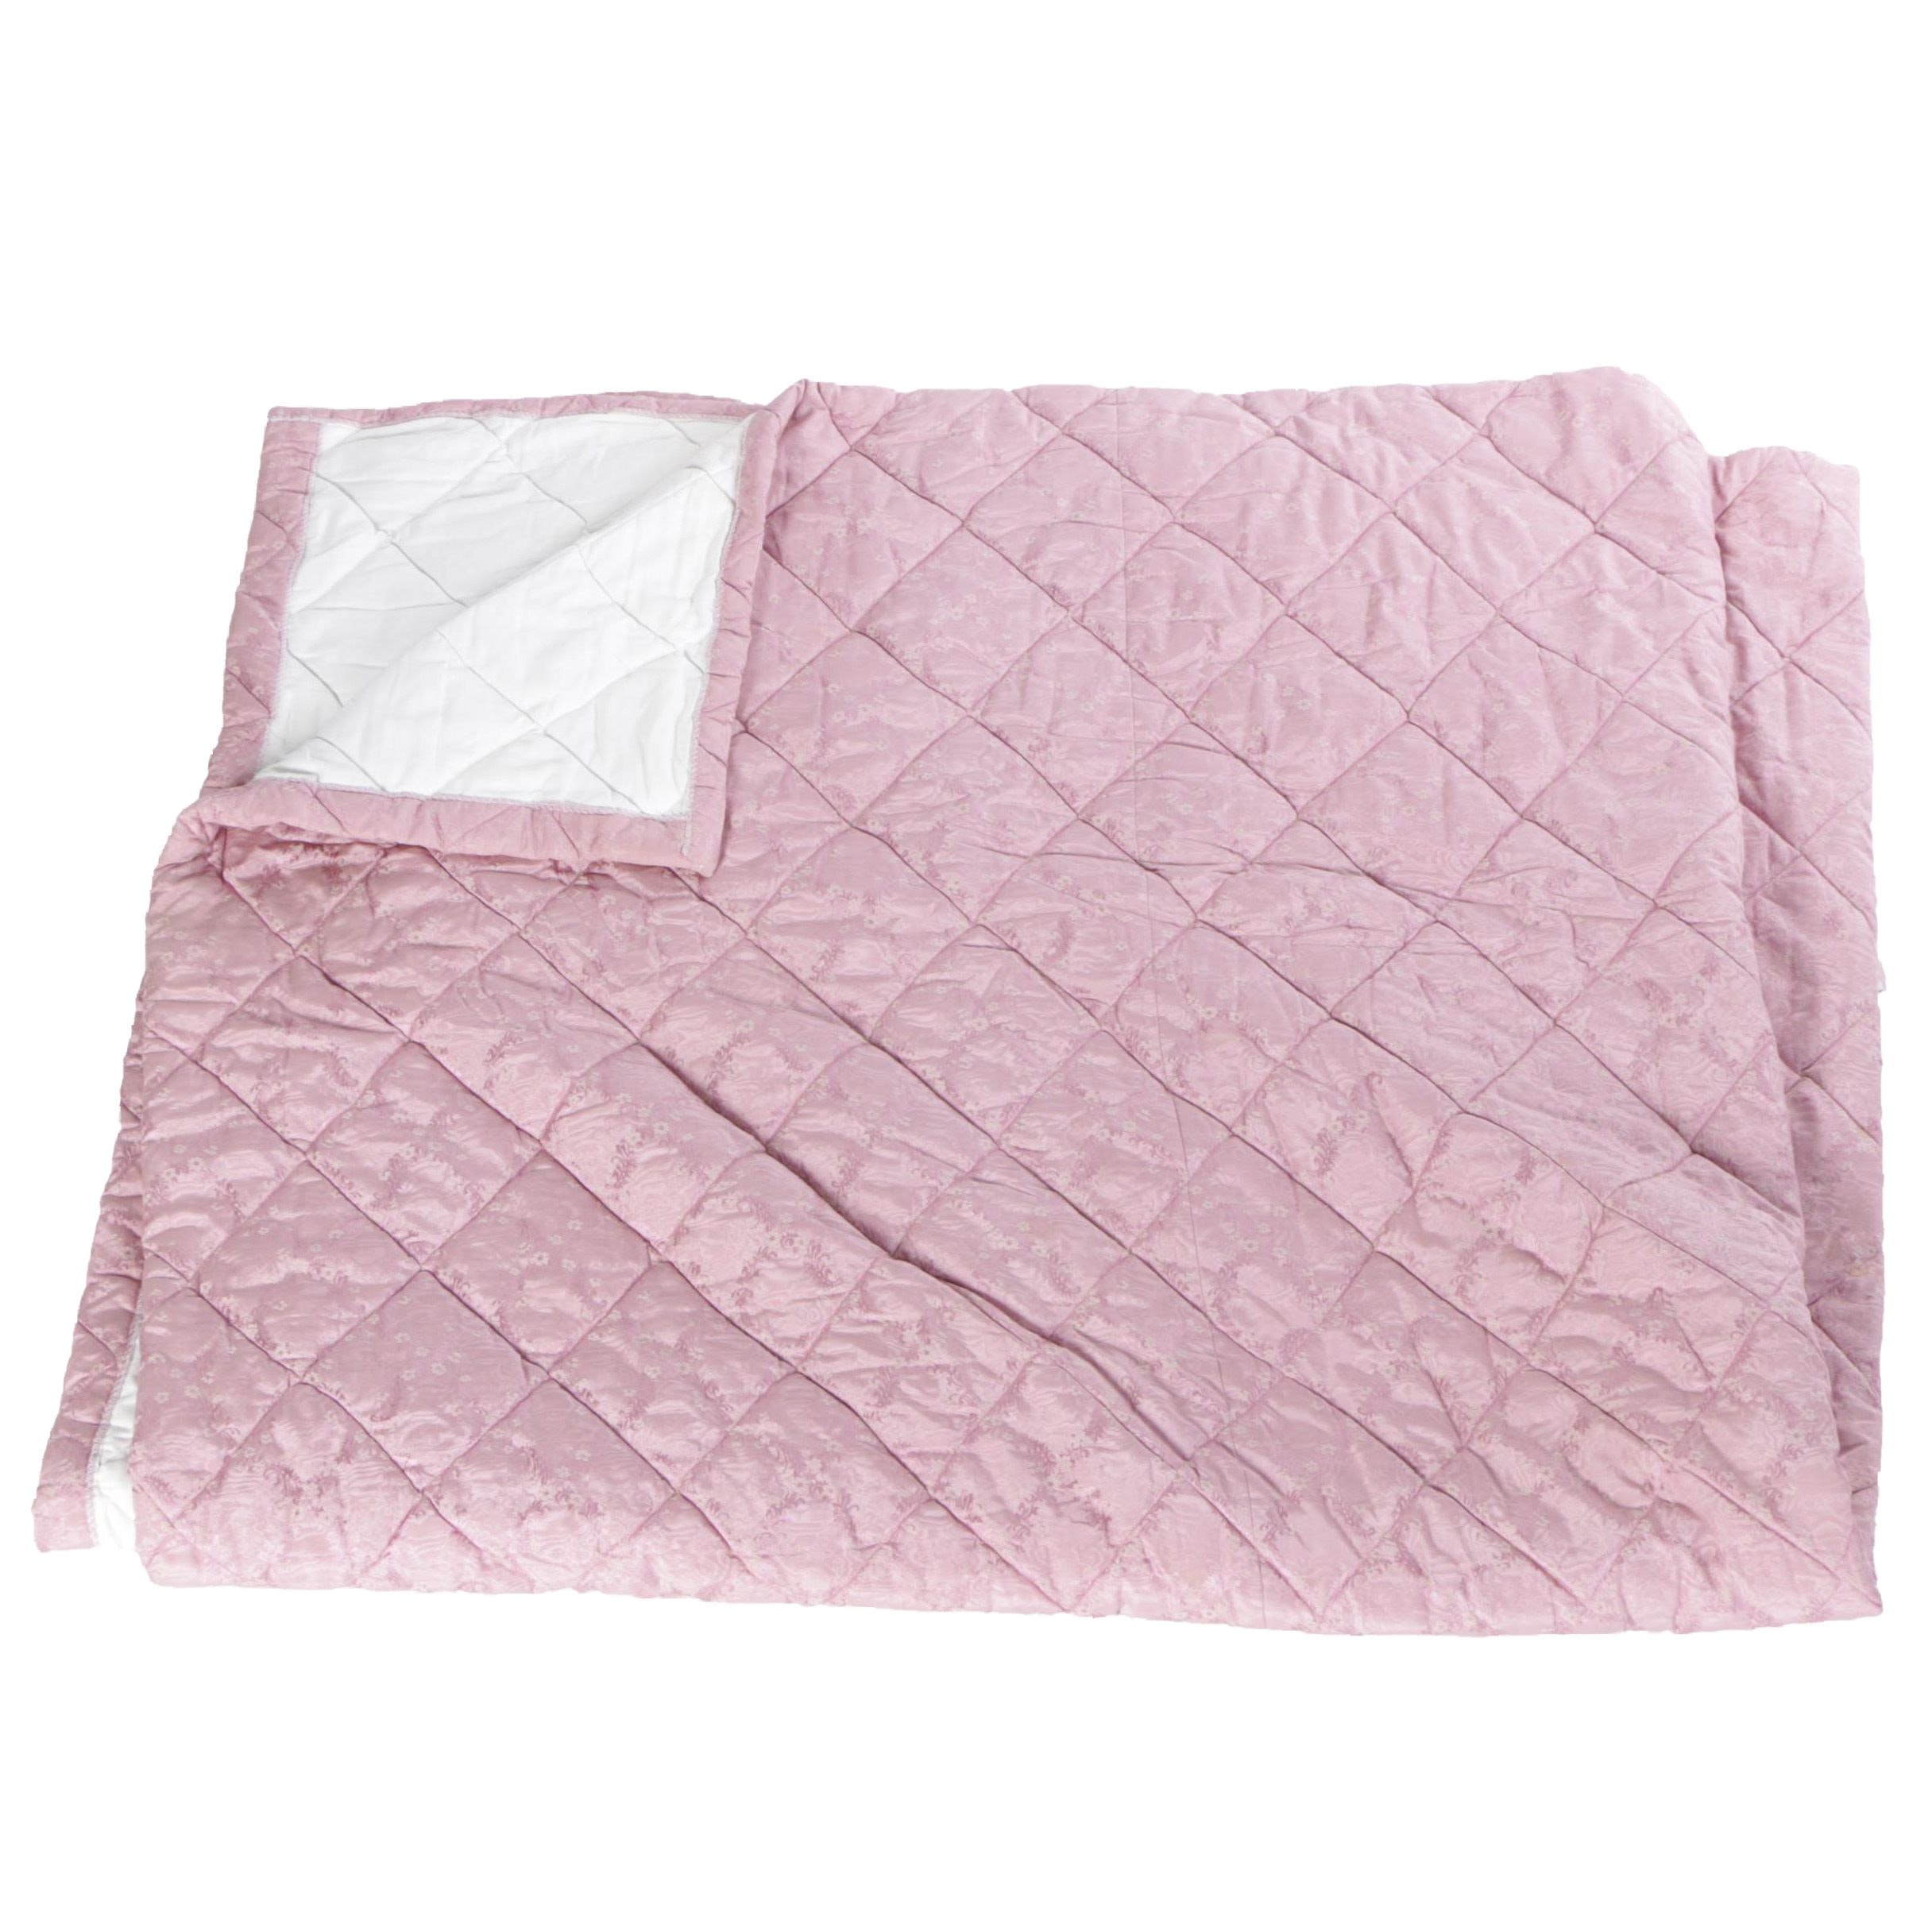 King Sized Pink Floral Quilted Comforter